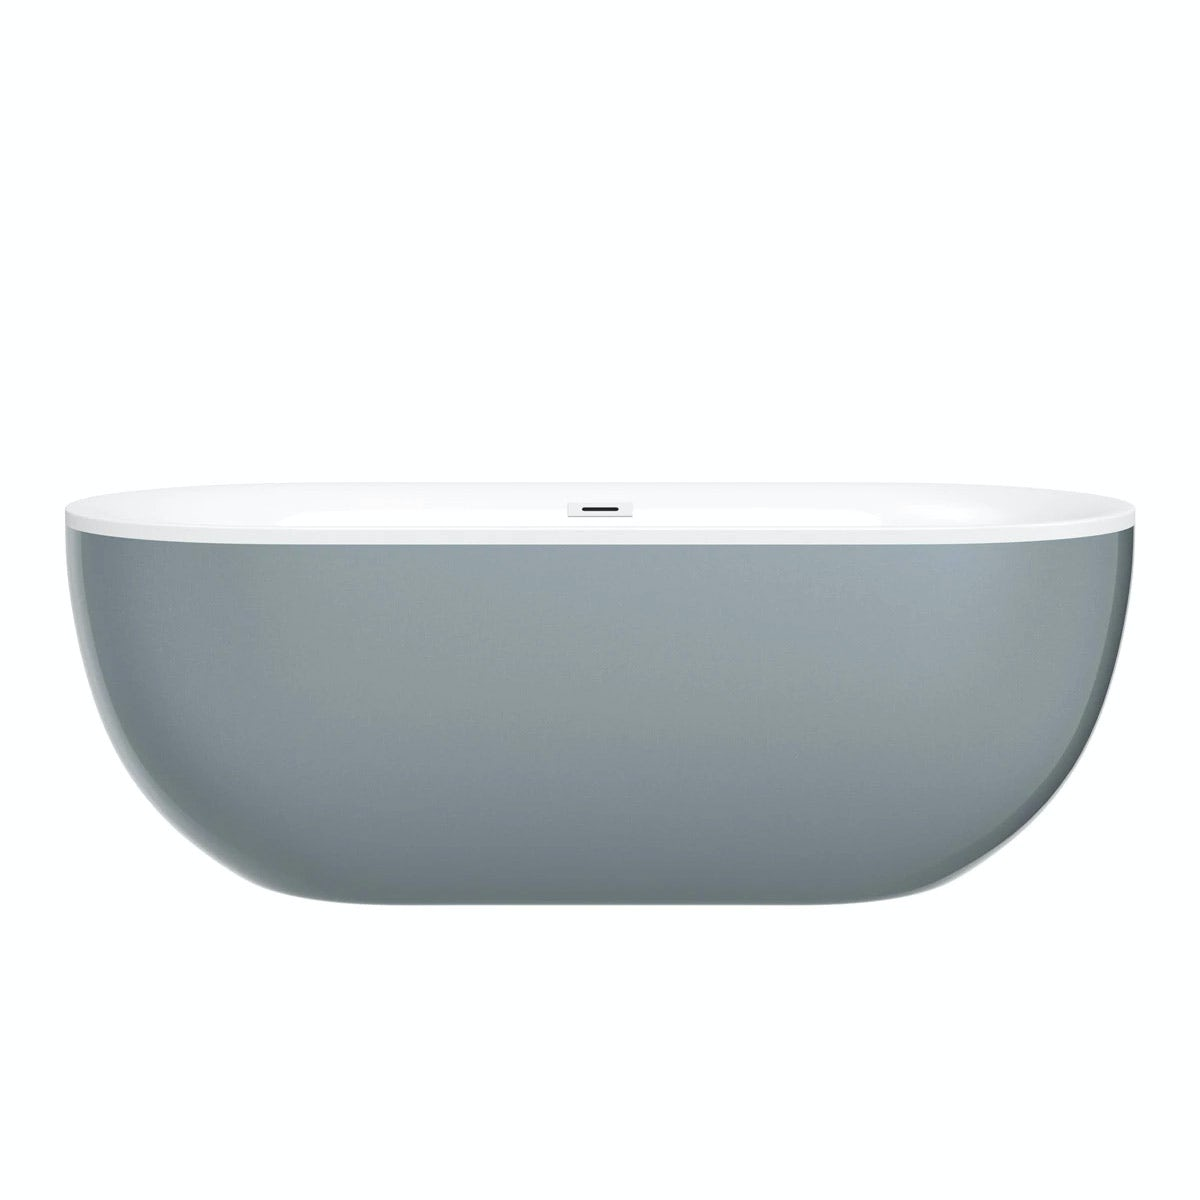 Mode Ellis Storm freestanding bath 1700 x 780